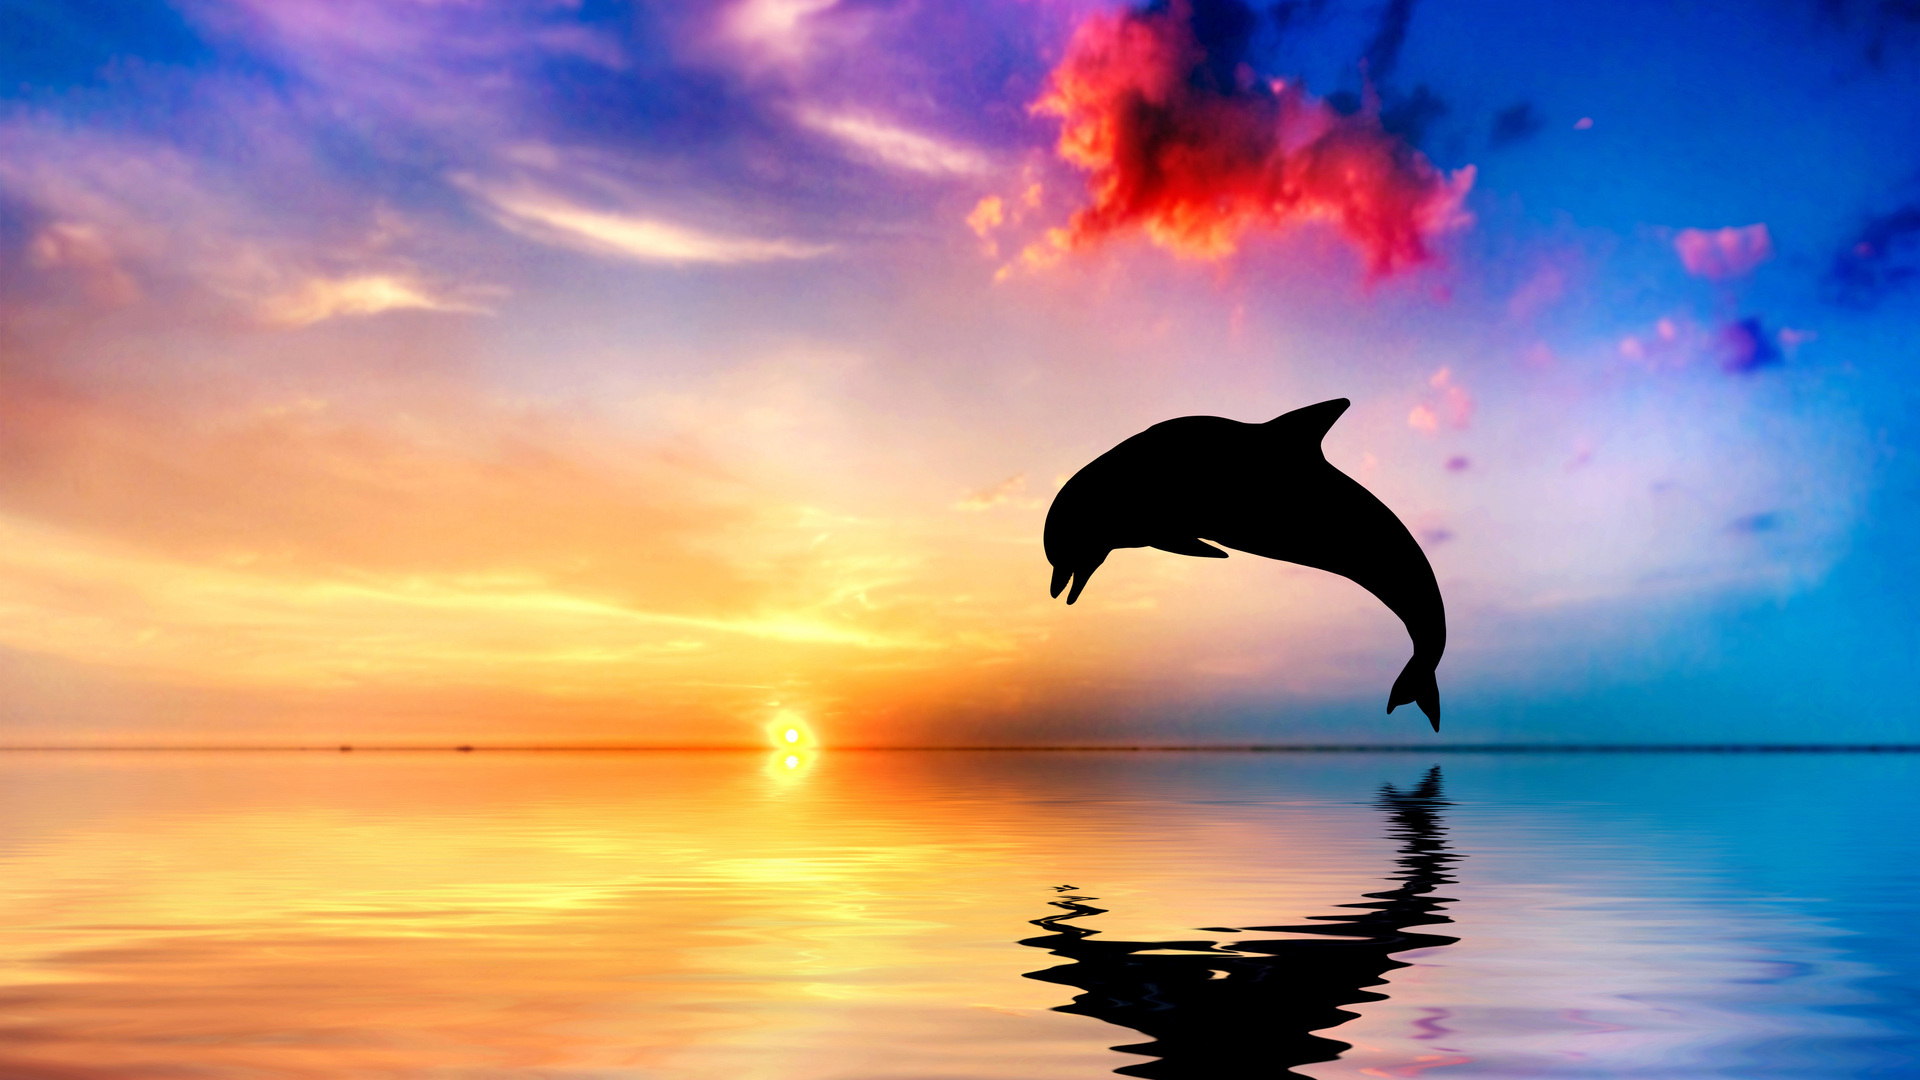 1920x1080 Dolphin Jumping Out Of Water Sunset View 4k Laptop Full Hd